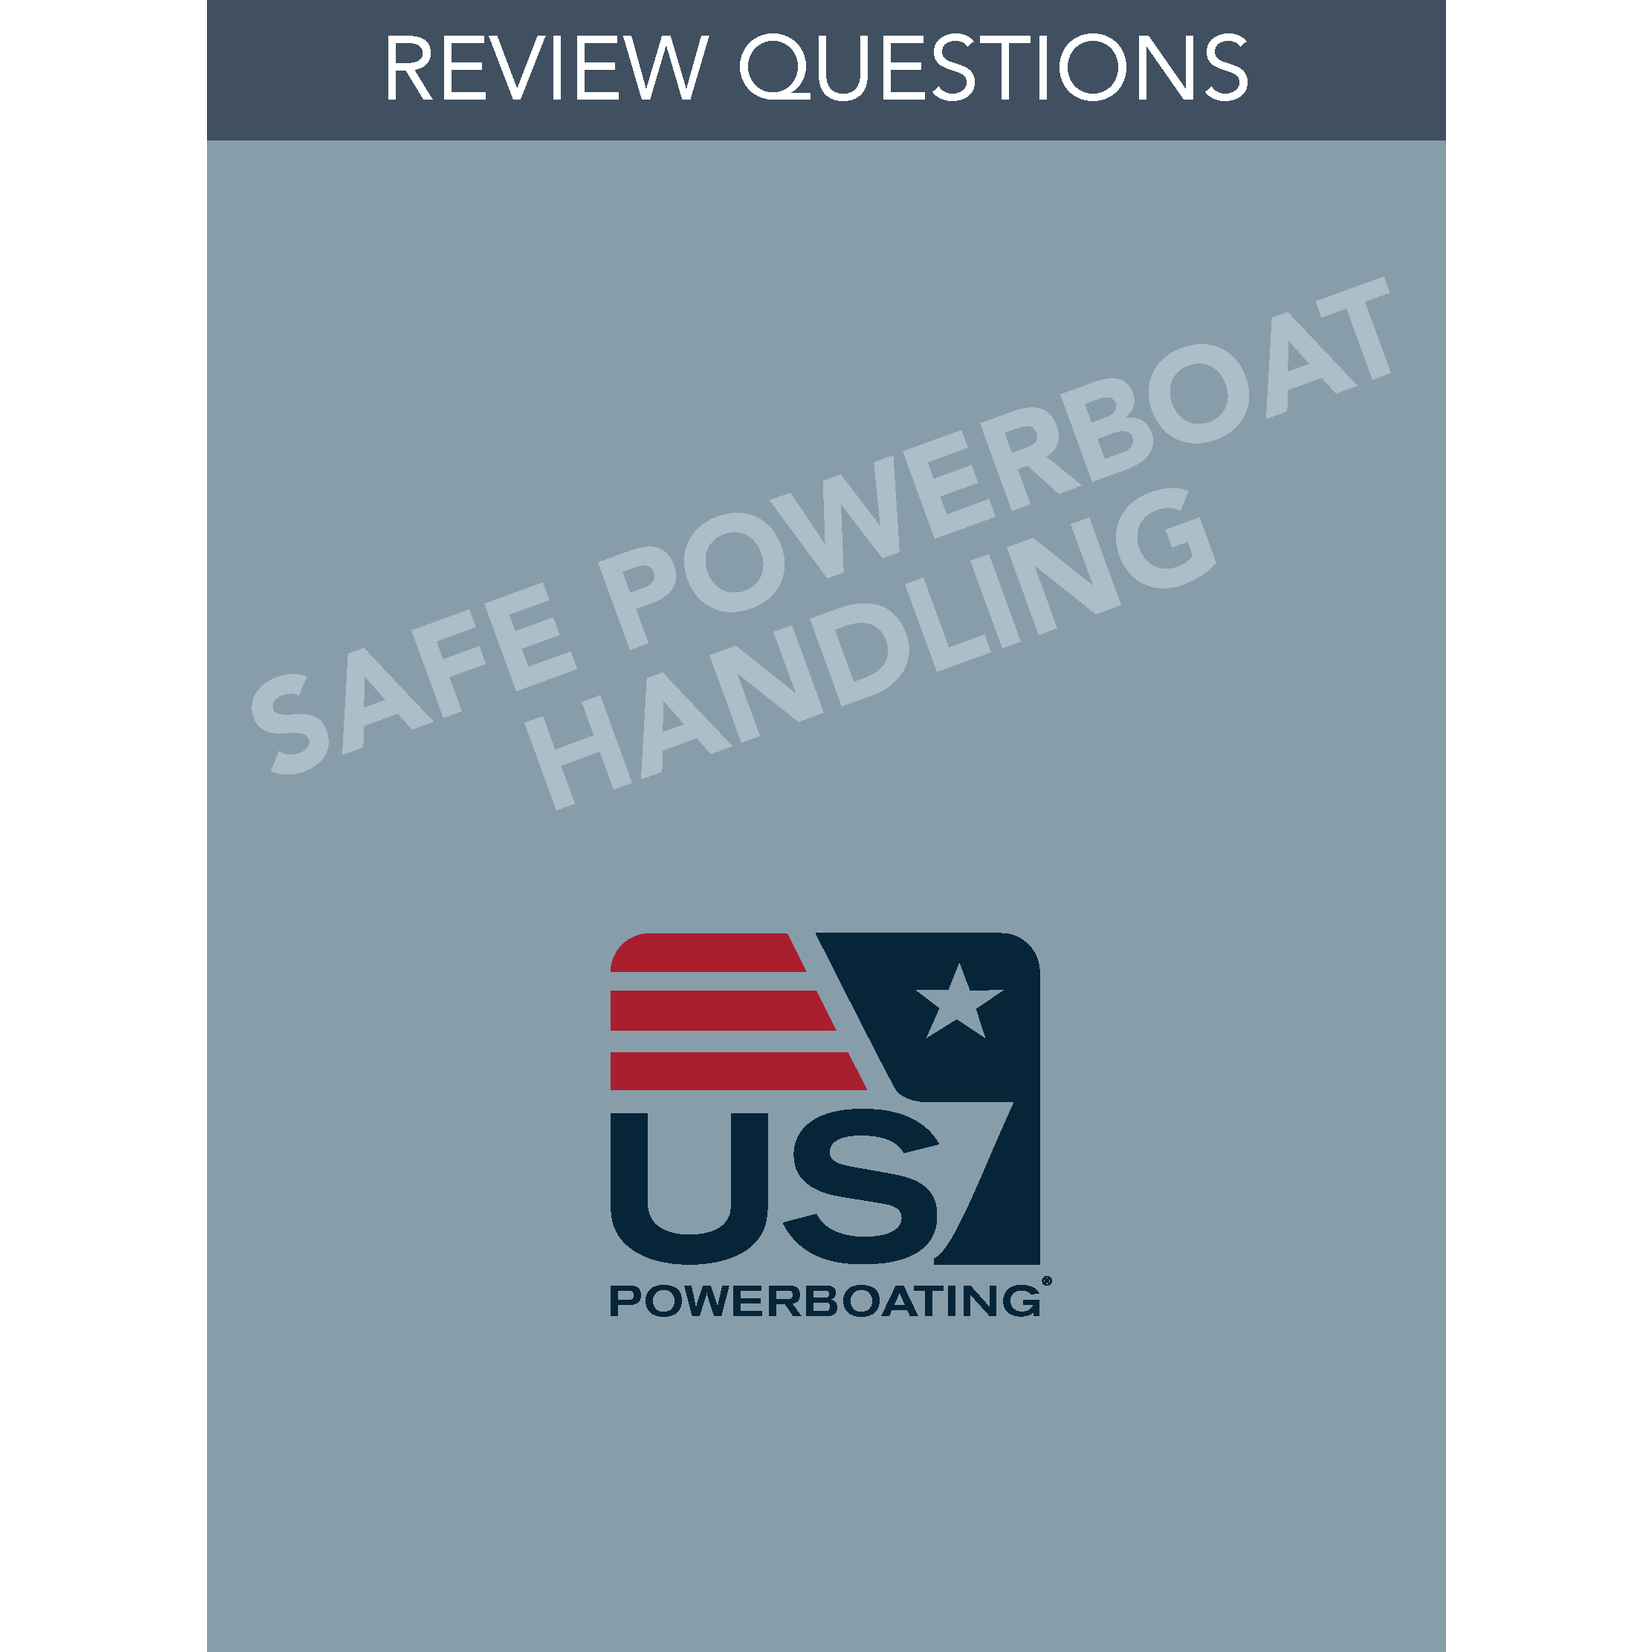 TEXT Safe Powerboating Handling Review Questions